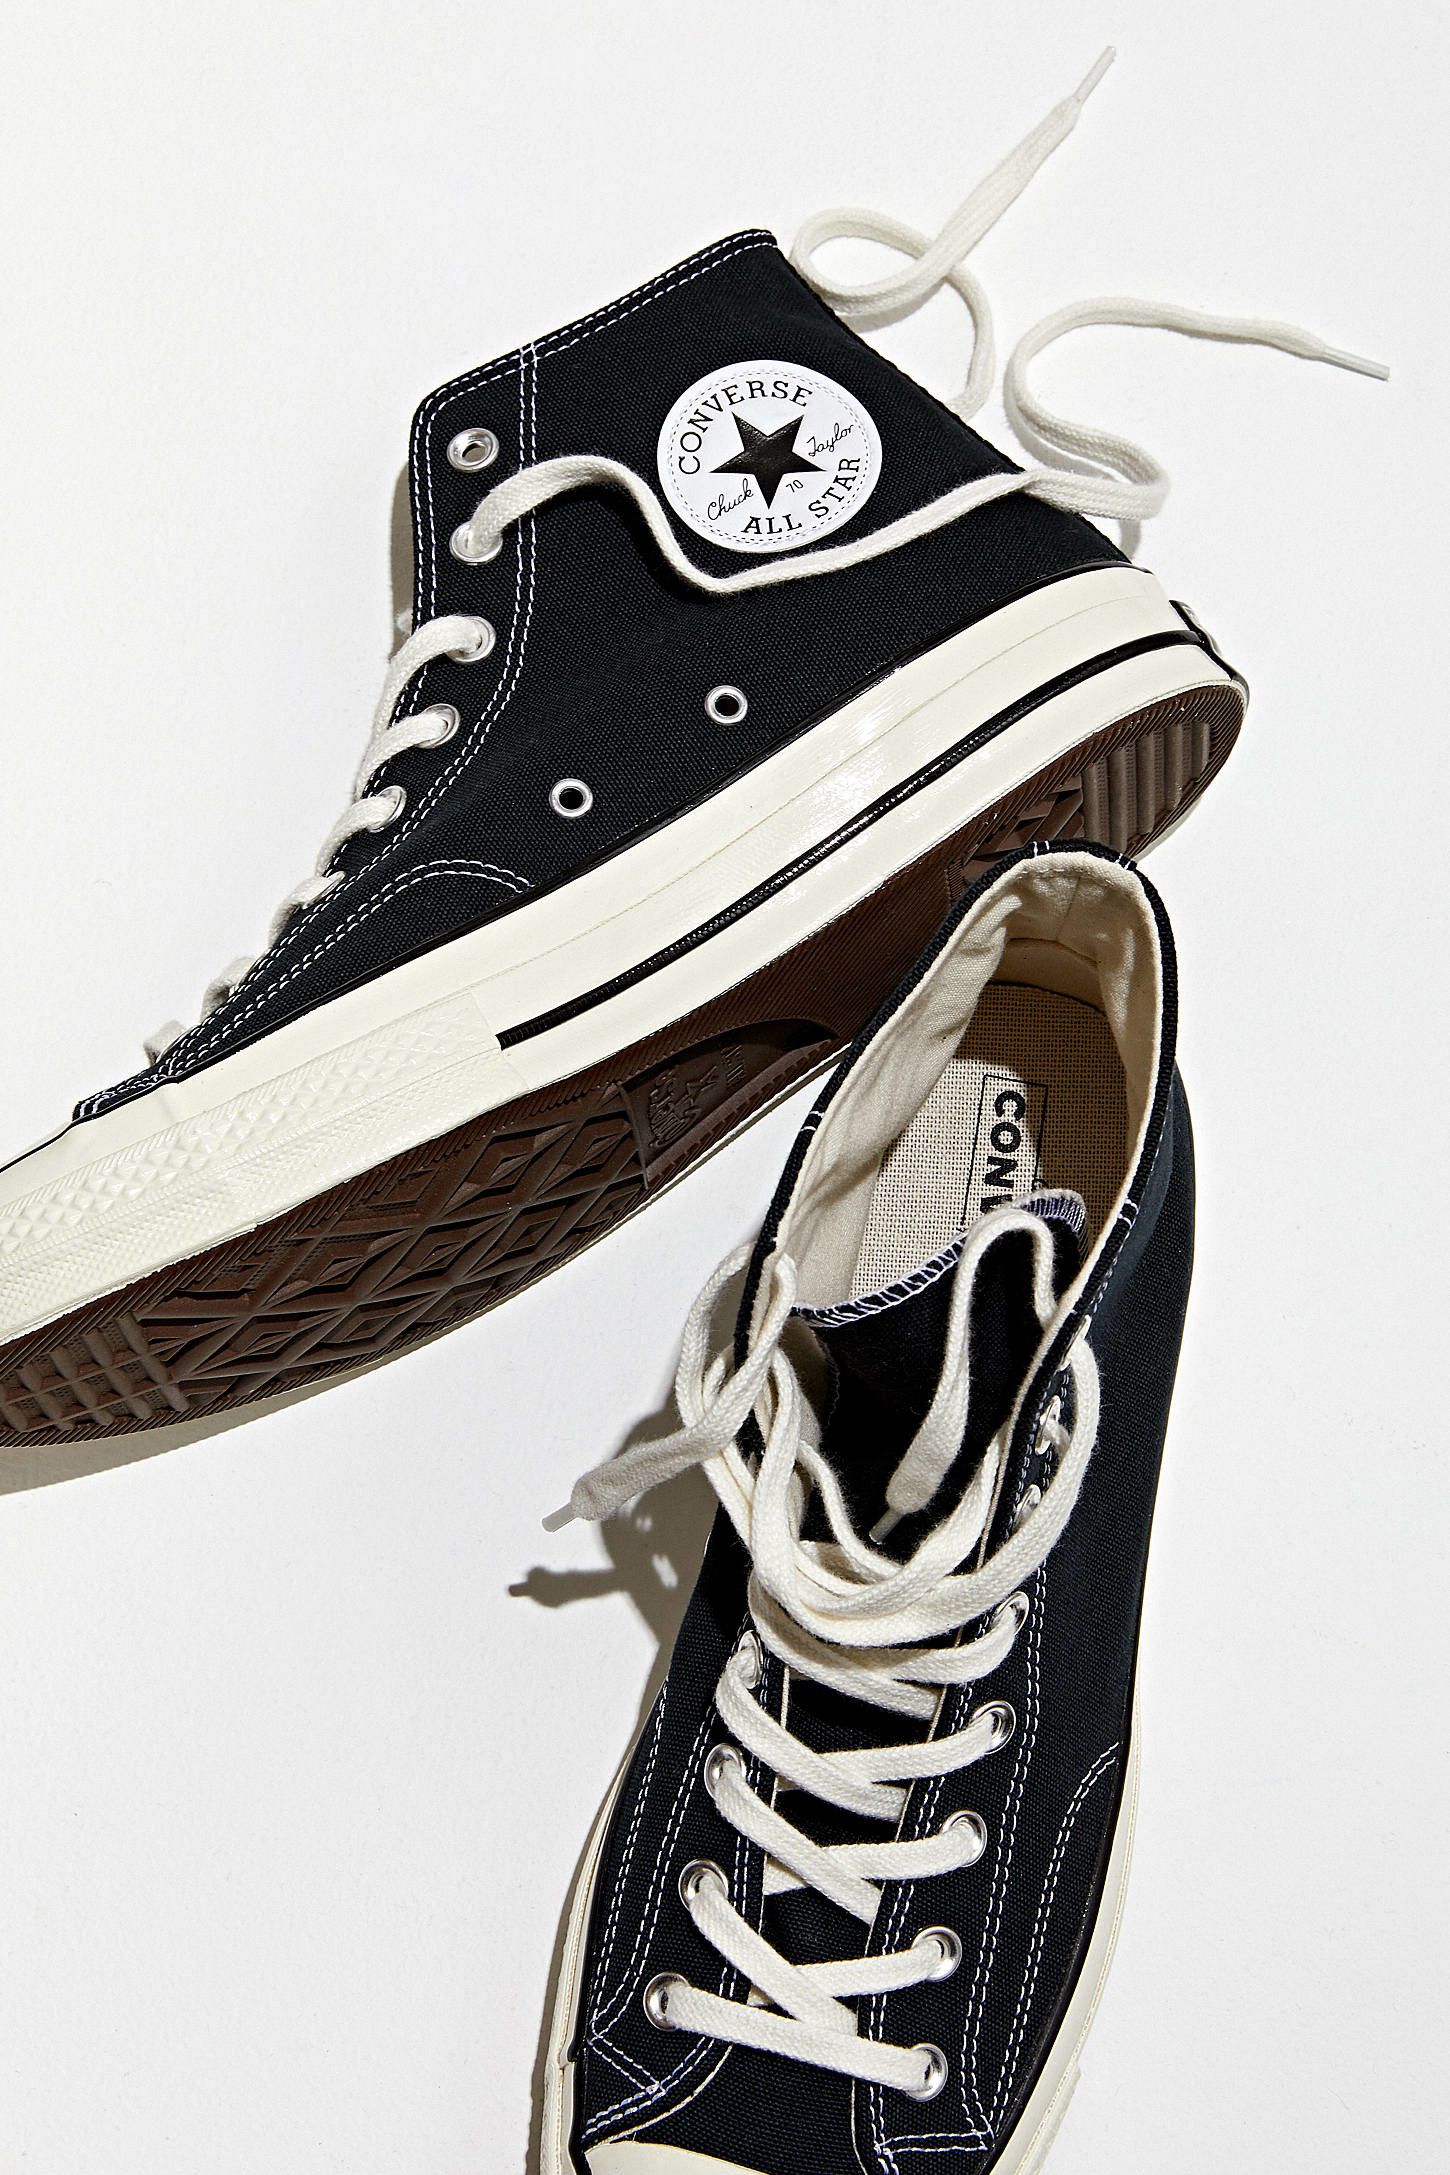 a pair of chuck converse shoes